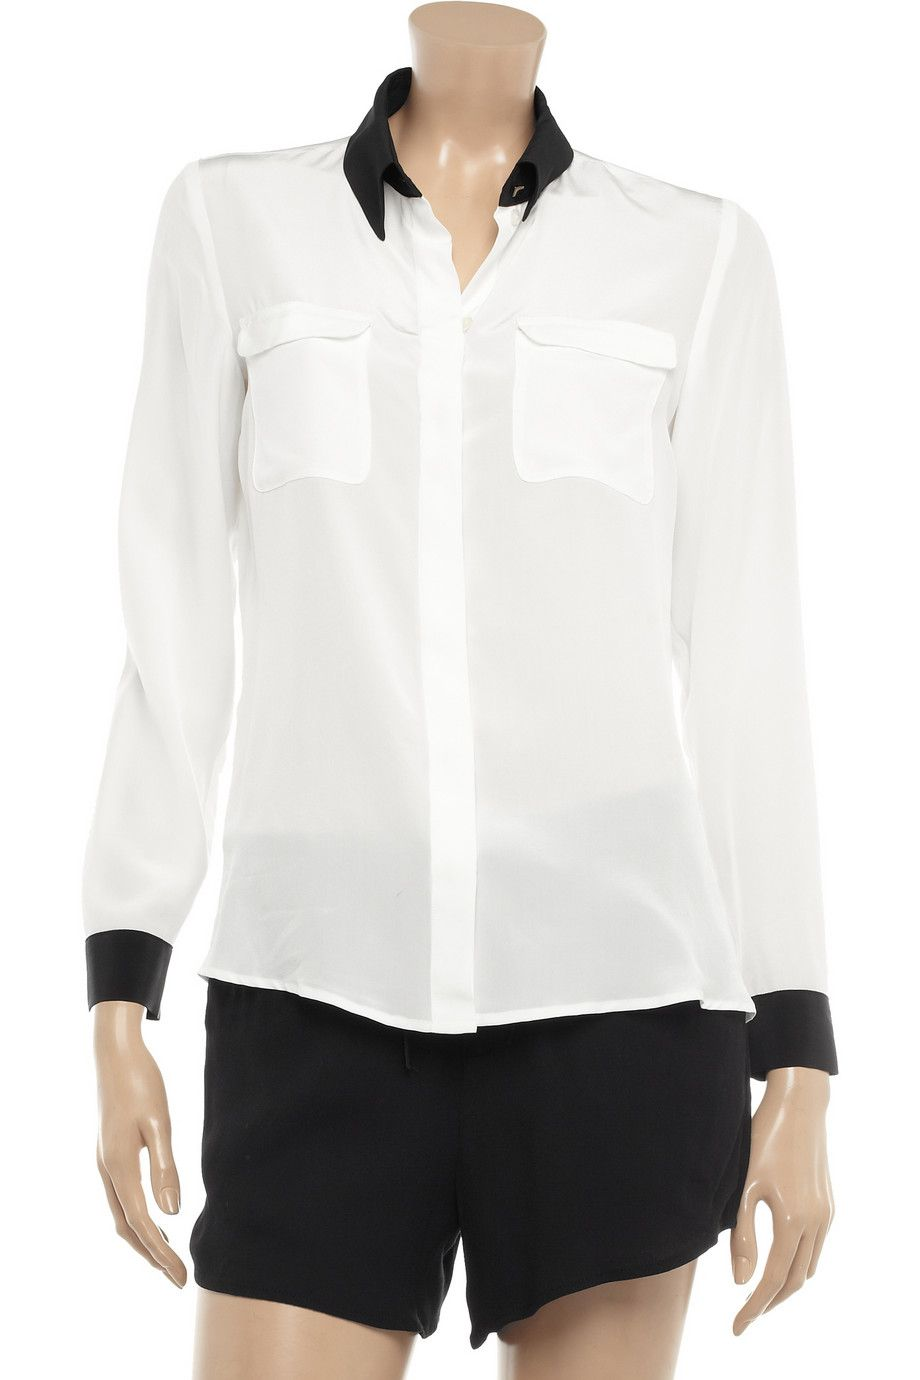 ba0755dd2a1dd2 White blouse, black trim. The Shirt Company. | Shirt Off My Back ...